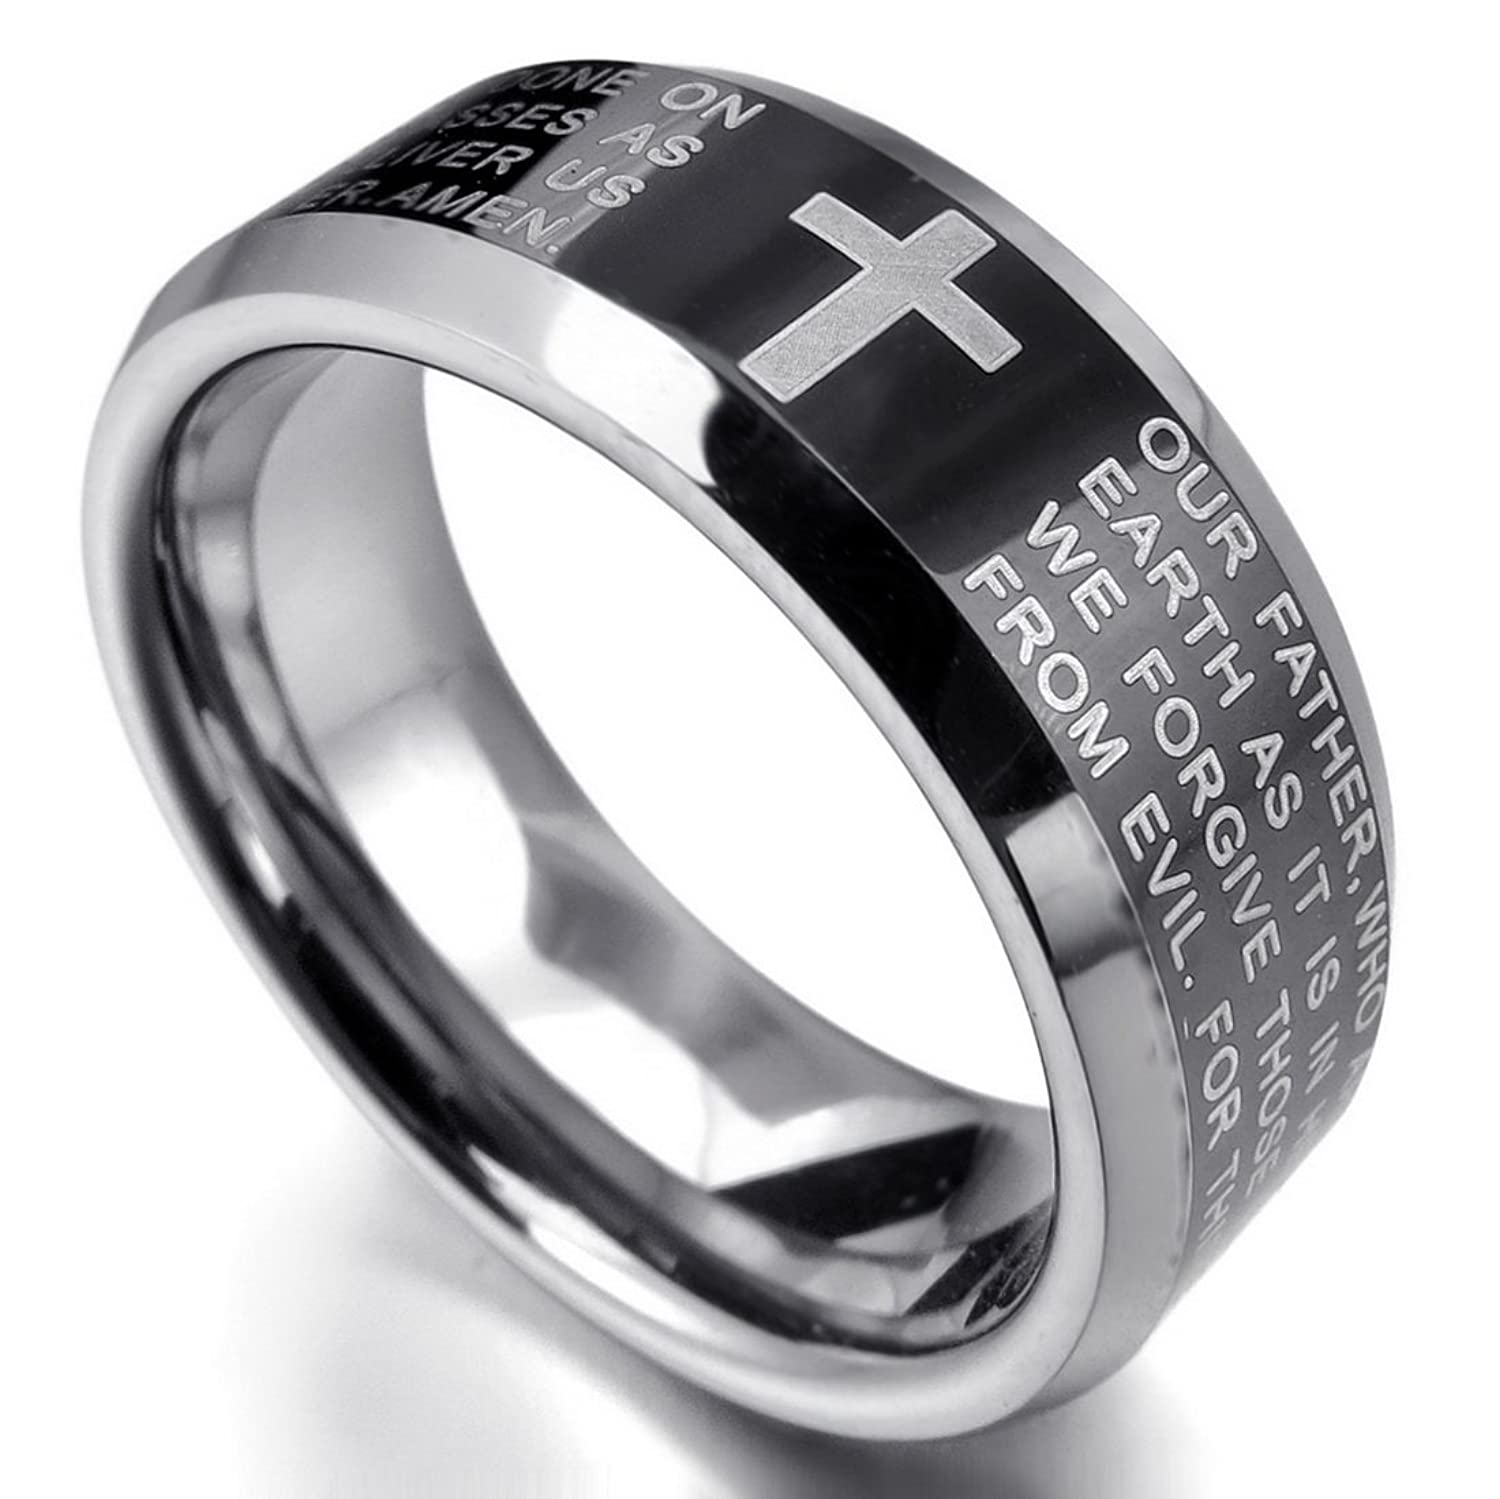 Amazon com  INBLUE Men s Tungsten Ring Band Black Silver Tone Comfort Fit  Cross English Bible Lords Prayer  JewelryAmazon com  INBLUE Men s Tungsten Ring Band Black Silver Tone  . Mens Cross Wedding Band. Home Design Ideas